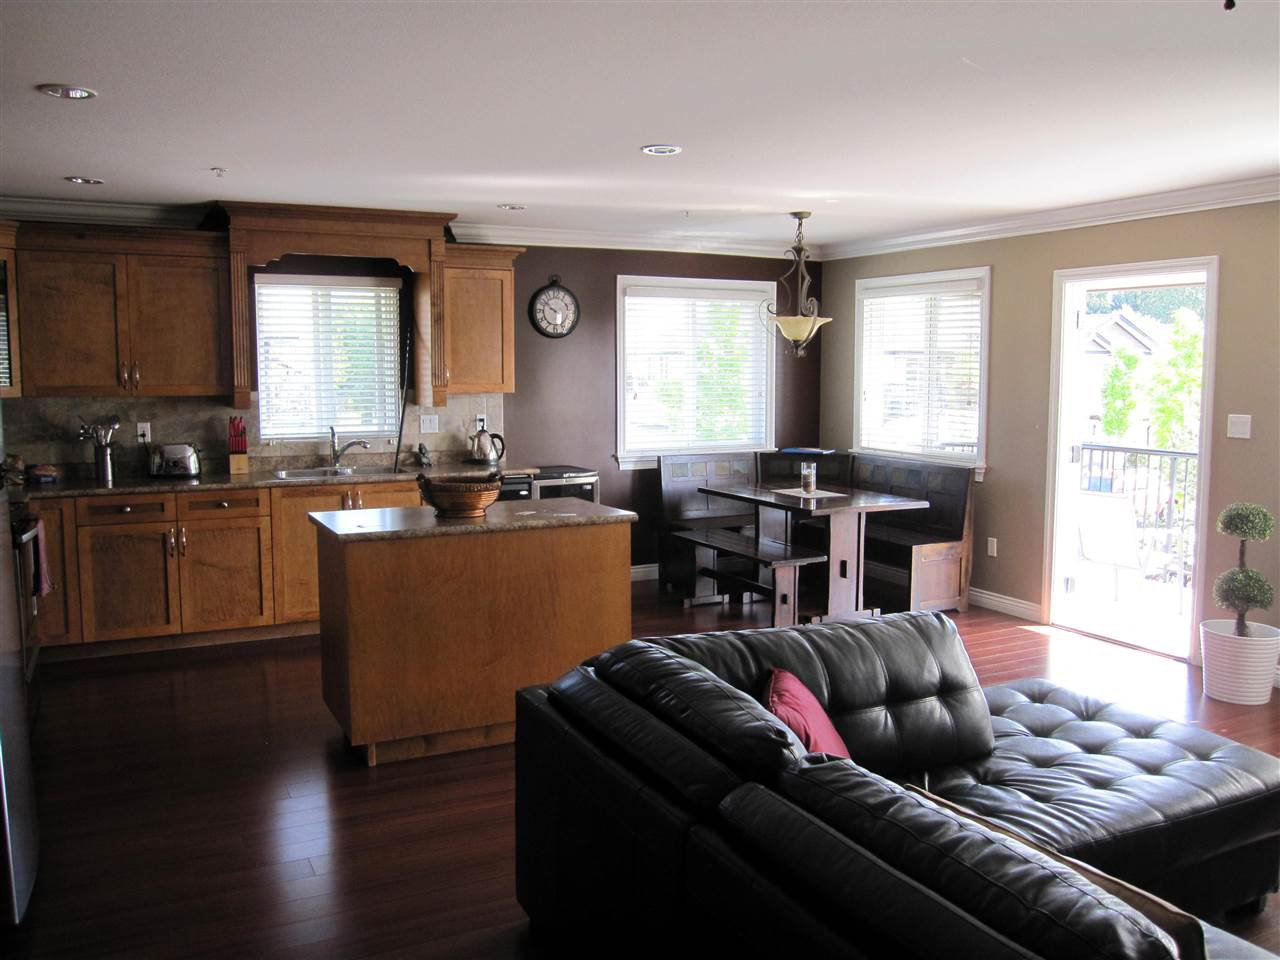 Photo 4: Photos: 11316 236 Street in Maple Ridge: Cottonwood MR House for sale : MLS®# R2062616